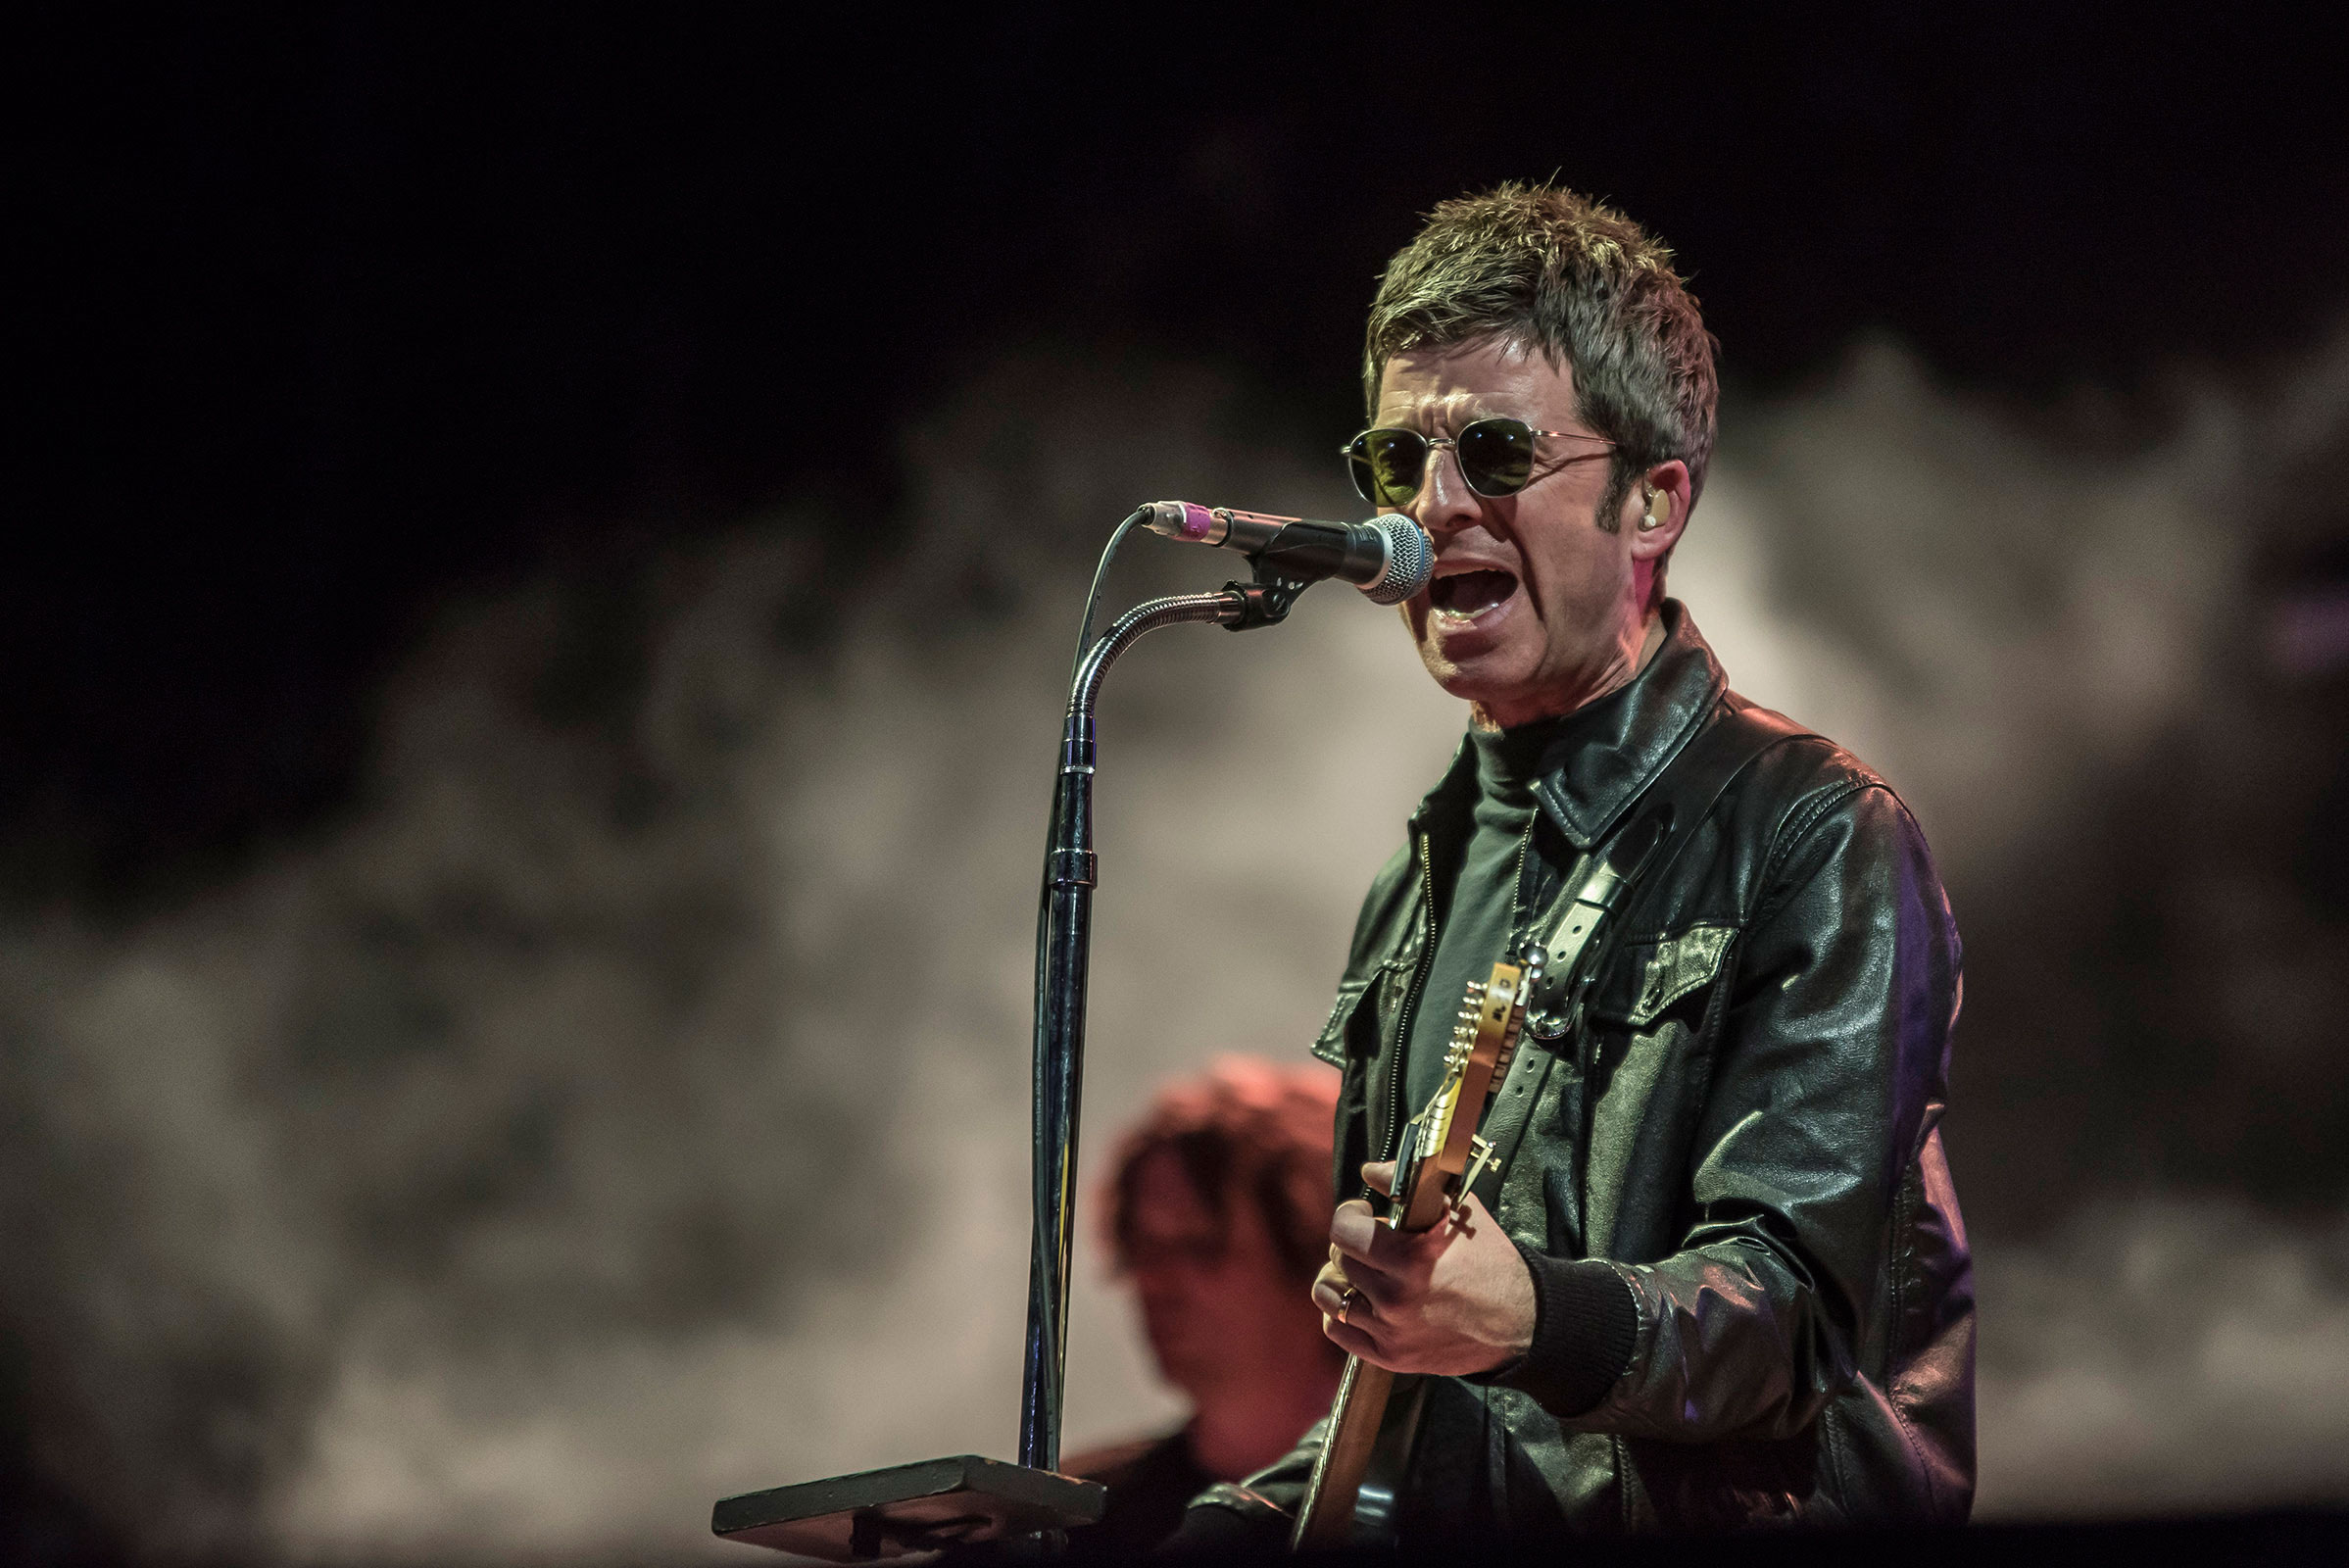 Noel Gallagher regresa a Chile encabezando el festival Colors Night Lights